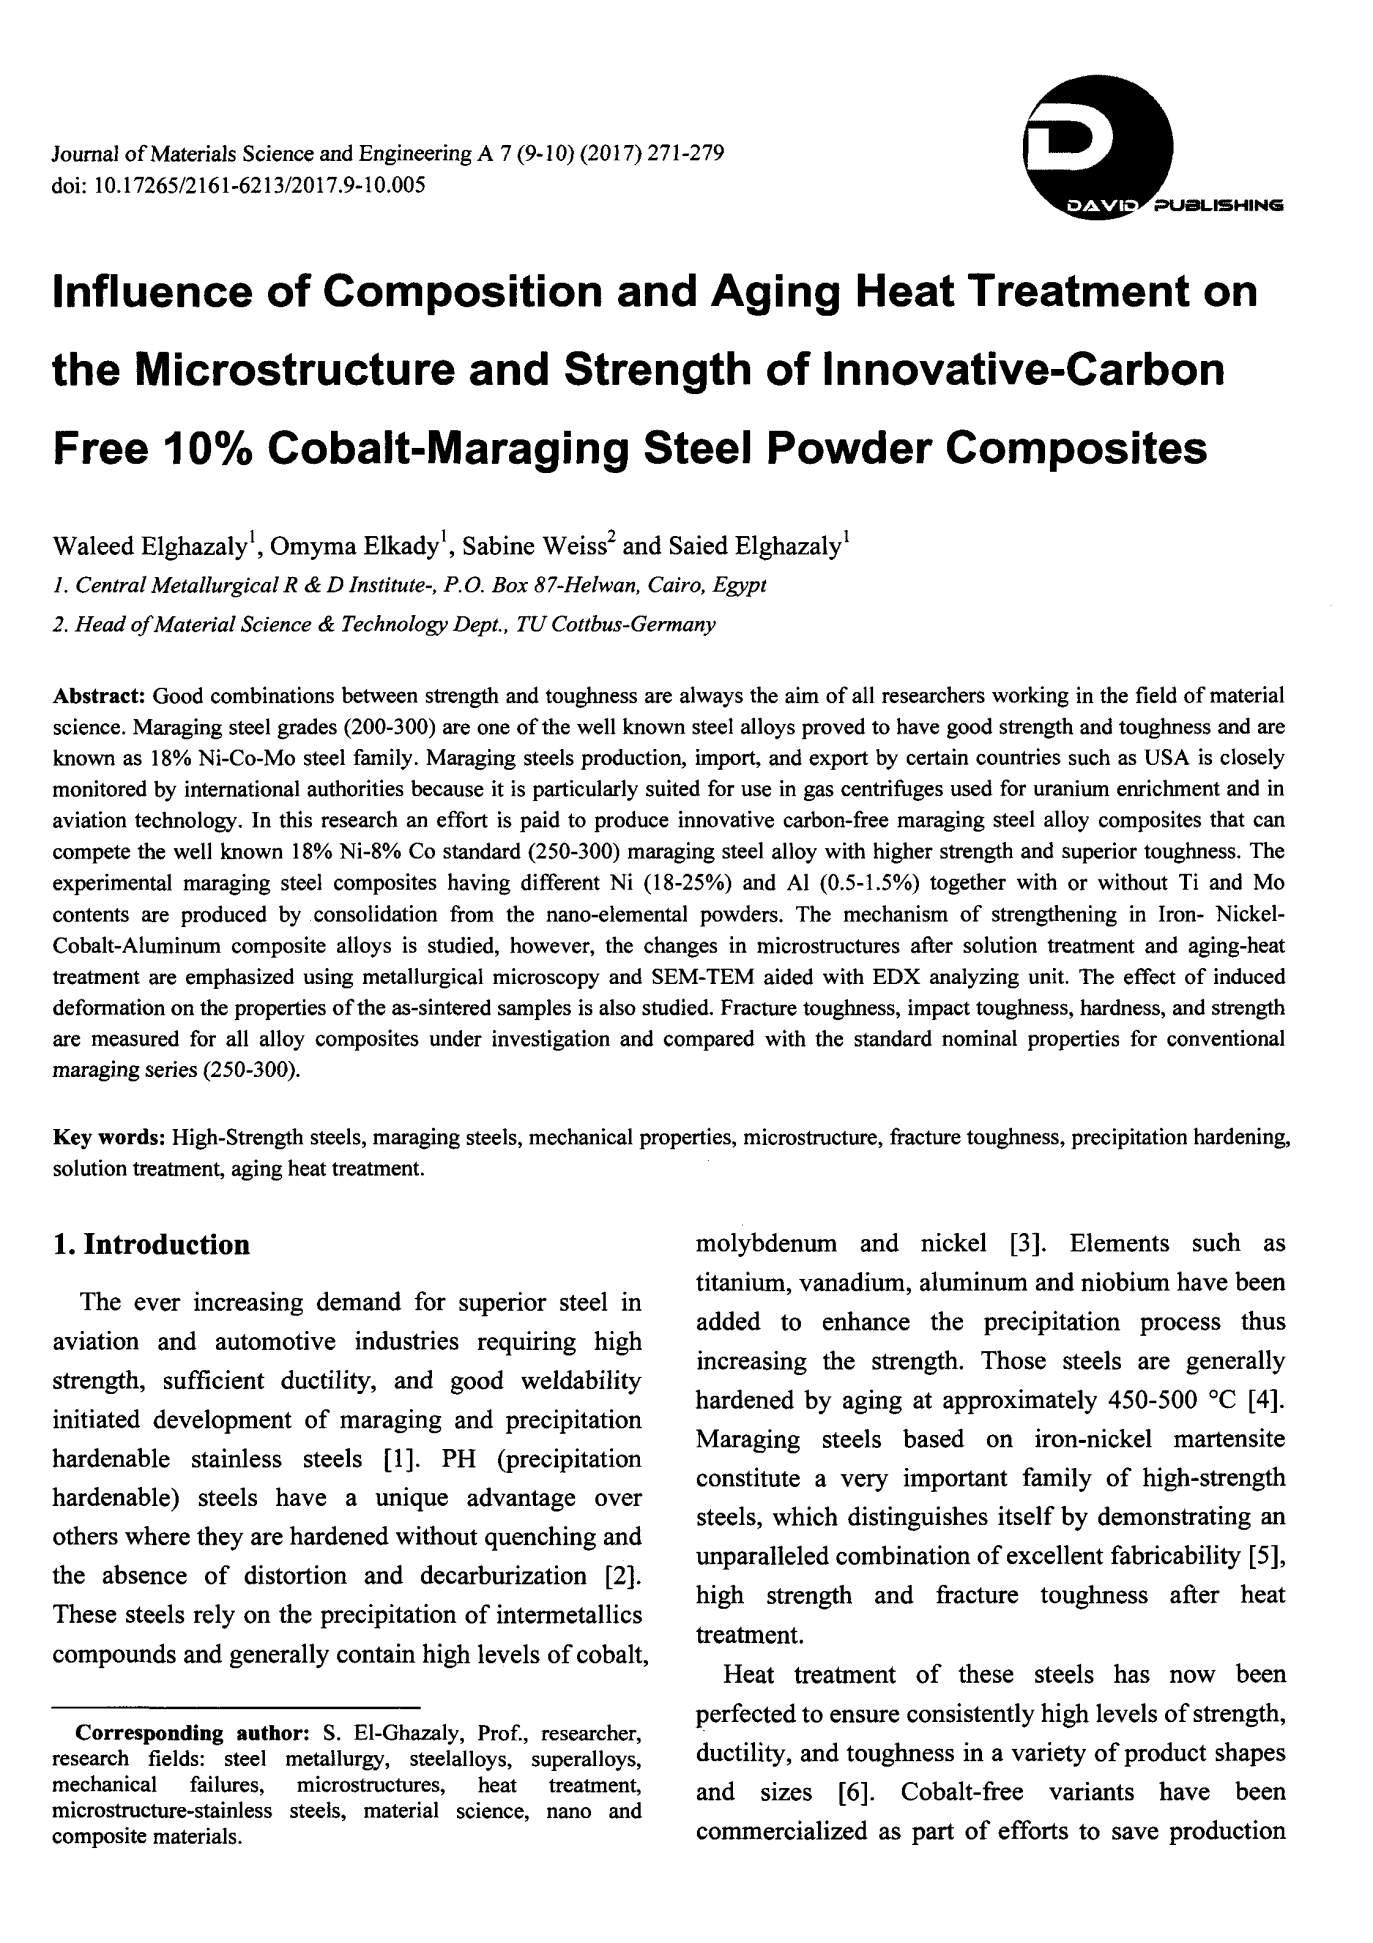 Influence of Composition and Aging Heat Treatment on the Microstructure and Strength of In